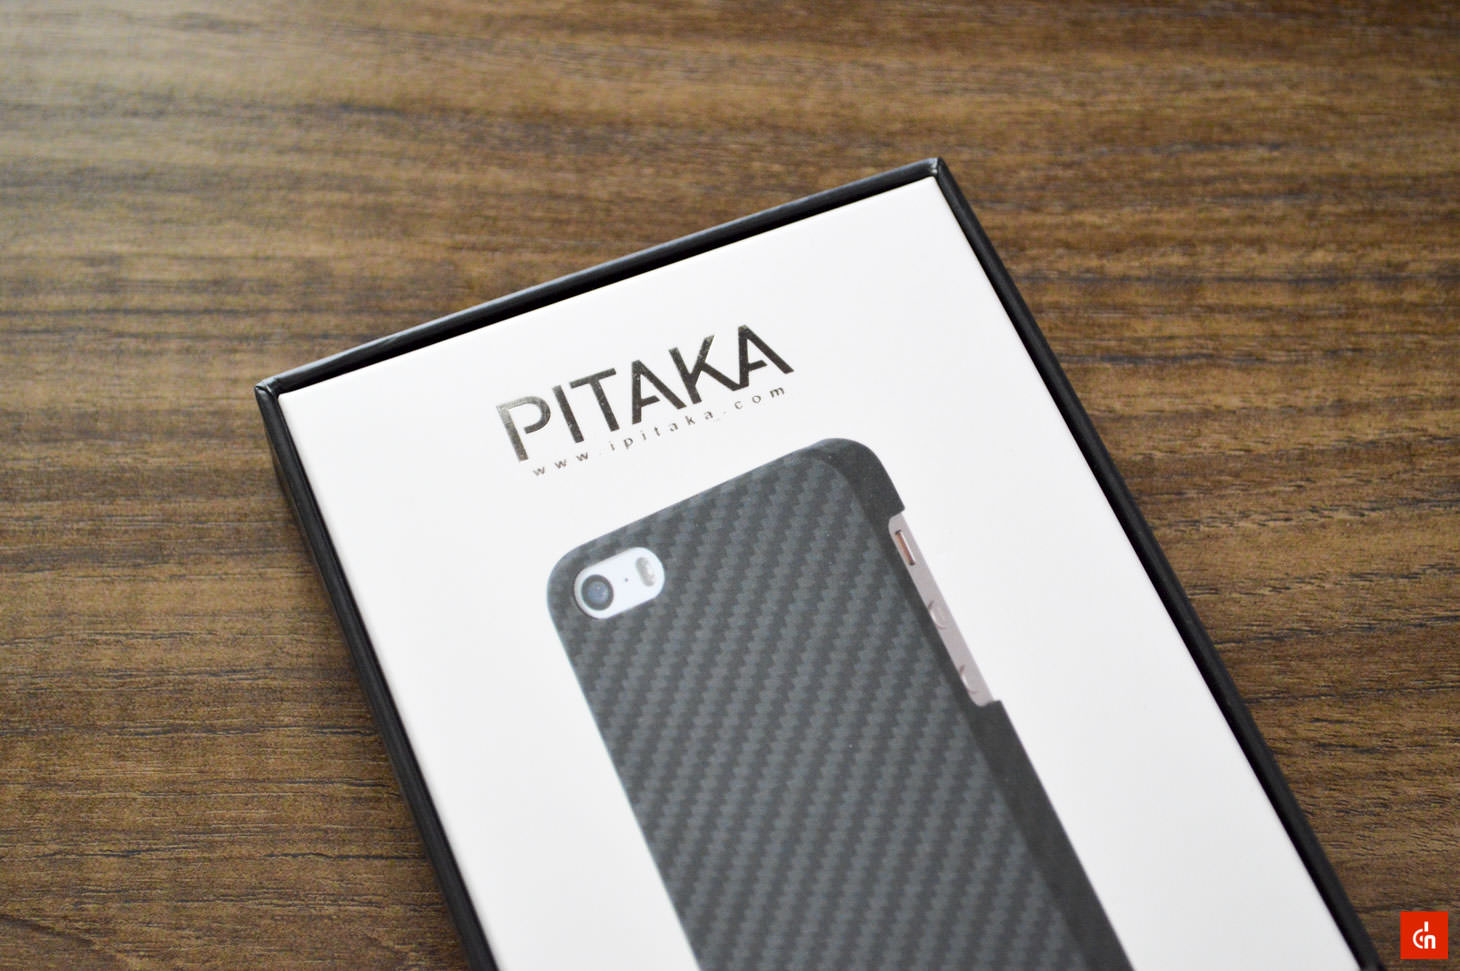 001_20160717_pitaka-carbon-iphonese-case